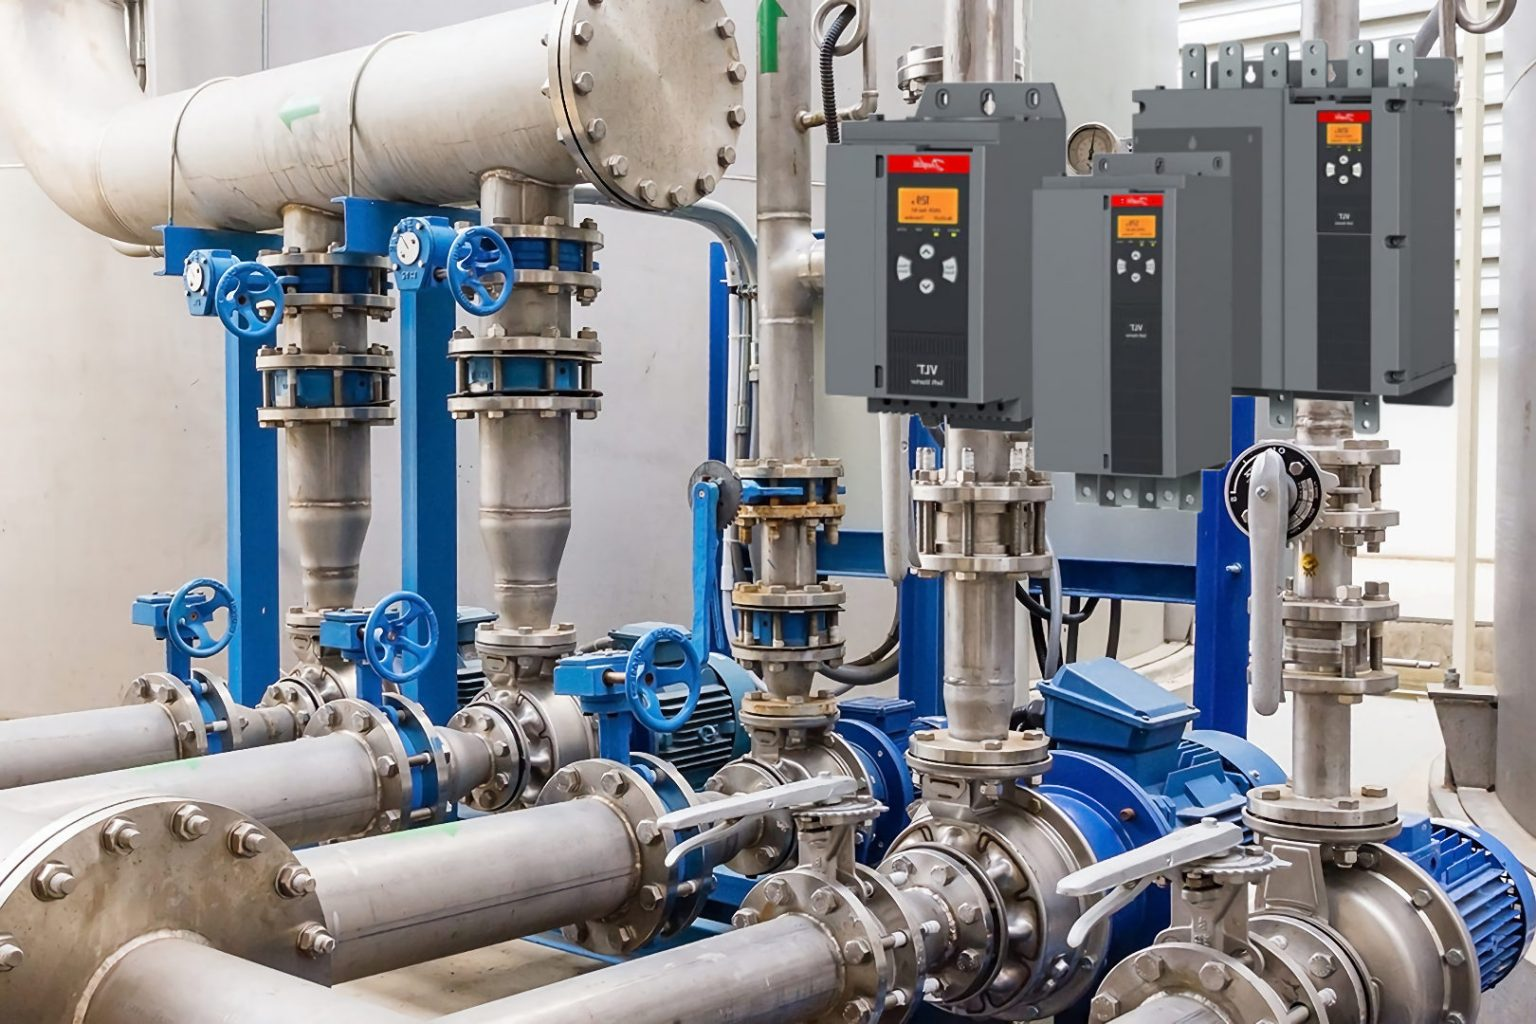 microngroup hvac pumps variable speed drives vsd installation